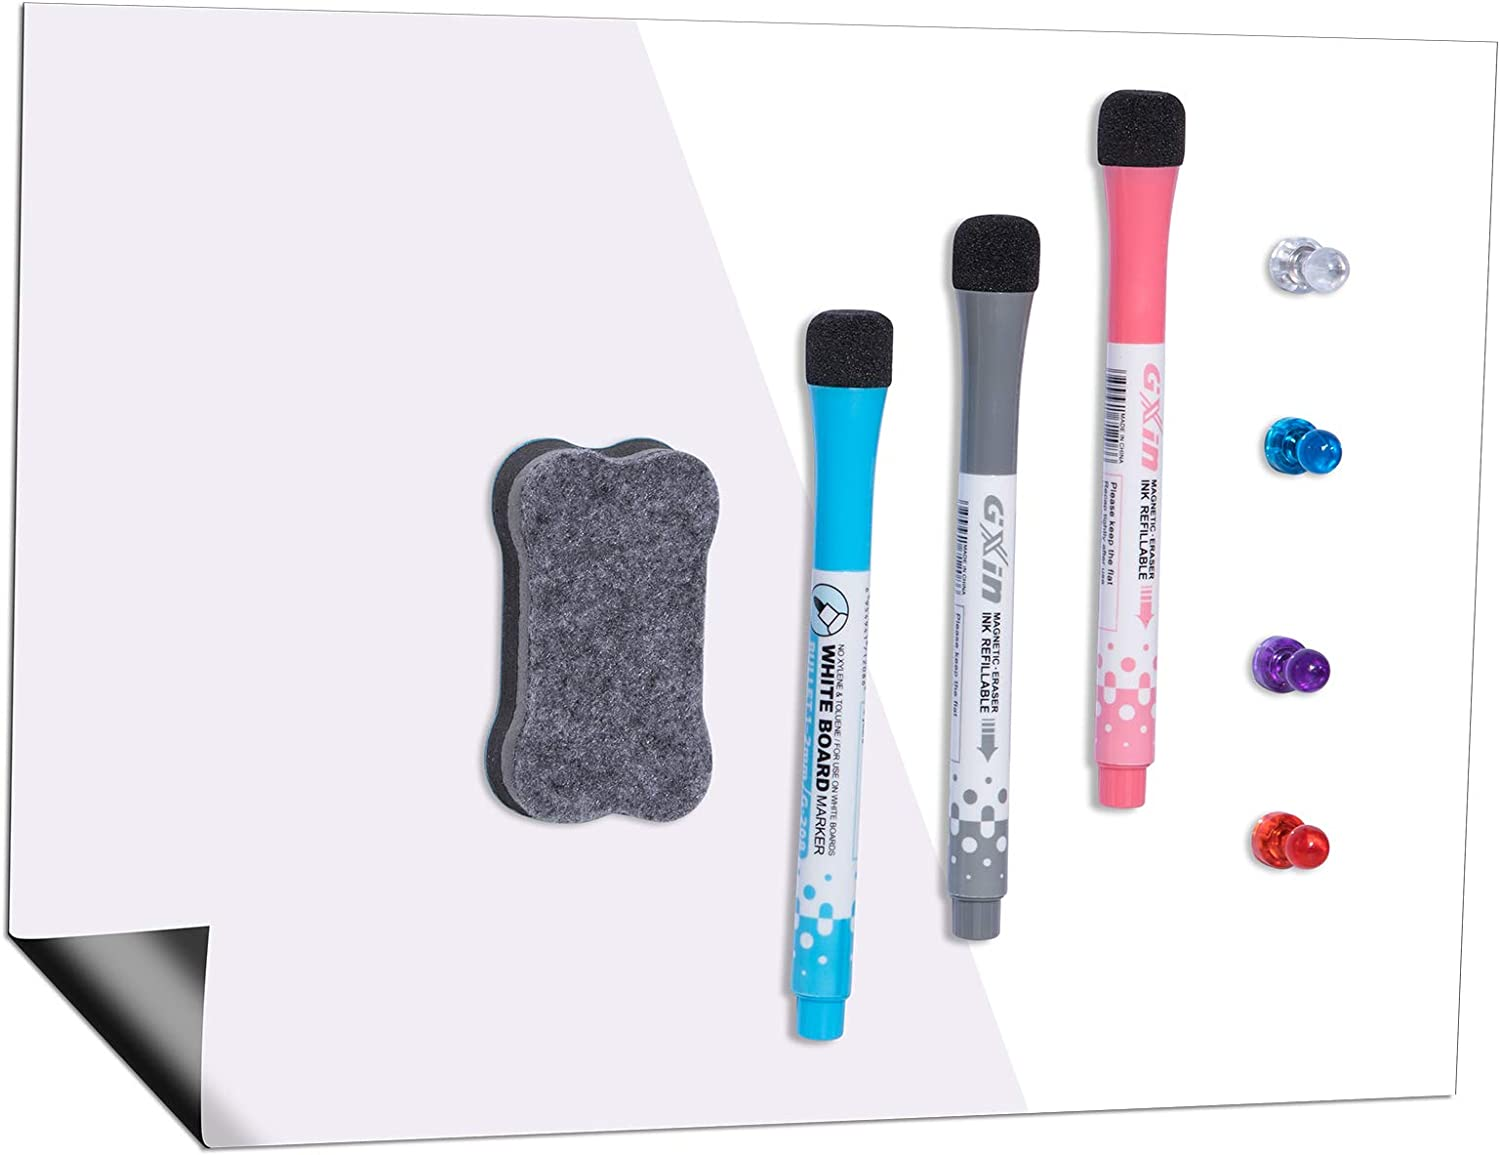 Magnetic Dry Erase Whiteboard Gorgeous Sheet for inch Fridge 17x11 Refrig Free shipping anywhere in the nation